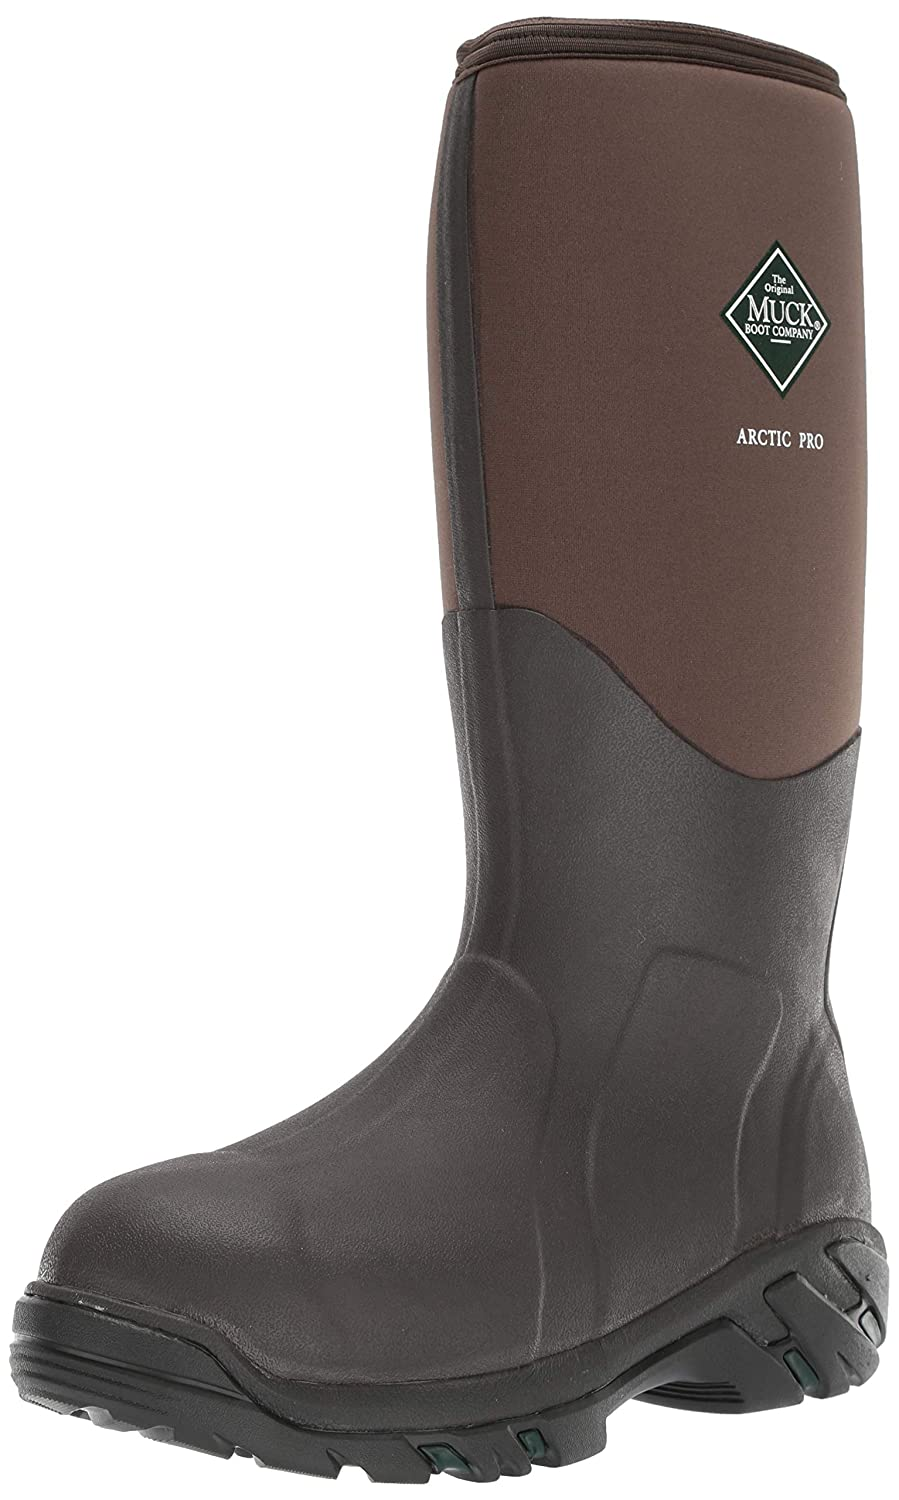 c8b73e02af0 Amazon.com  Muck Boot Men s Arctic Pro Hunting Boot  Clothing